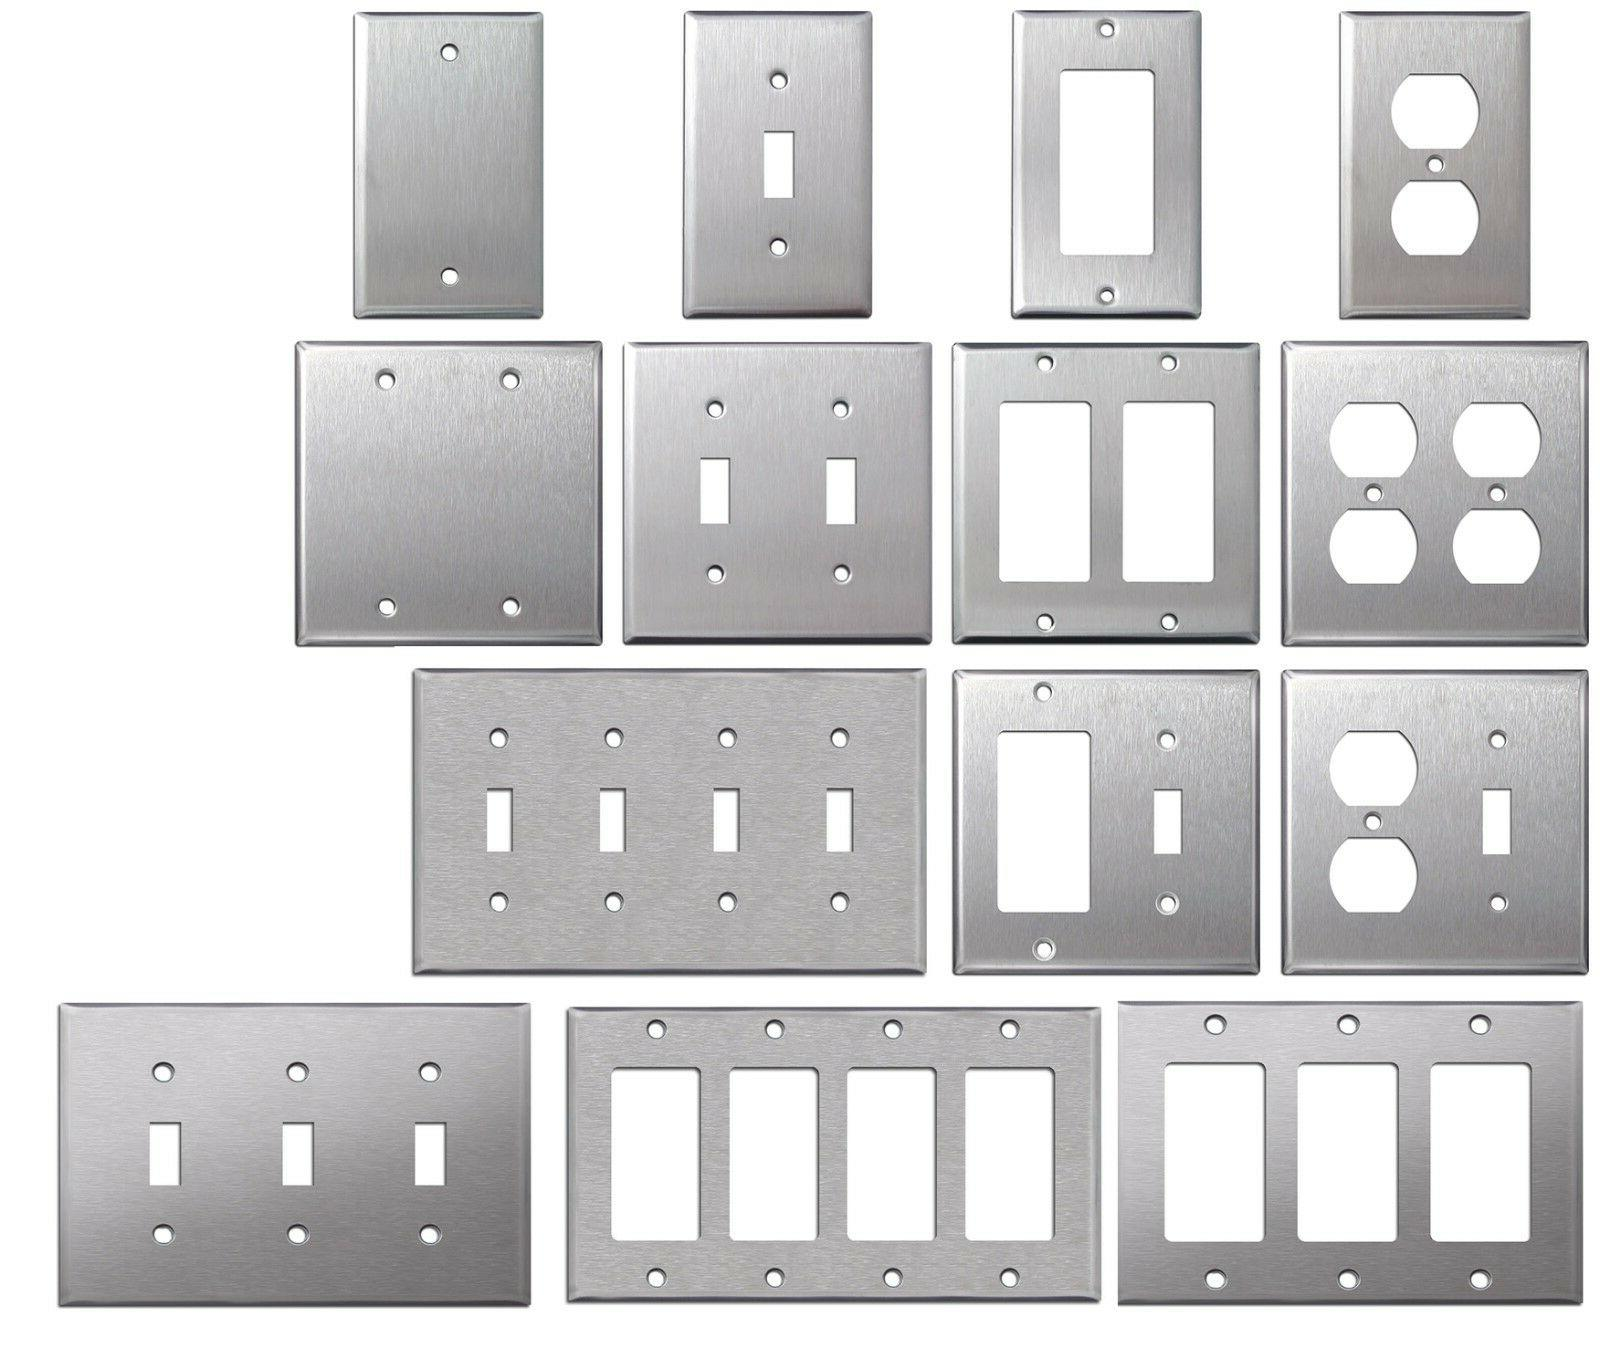 brushed satin nickel stainless steel wall covers